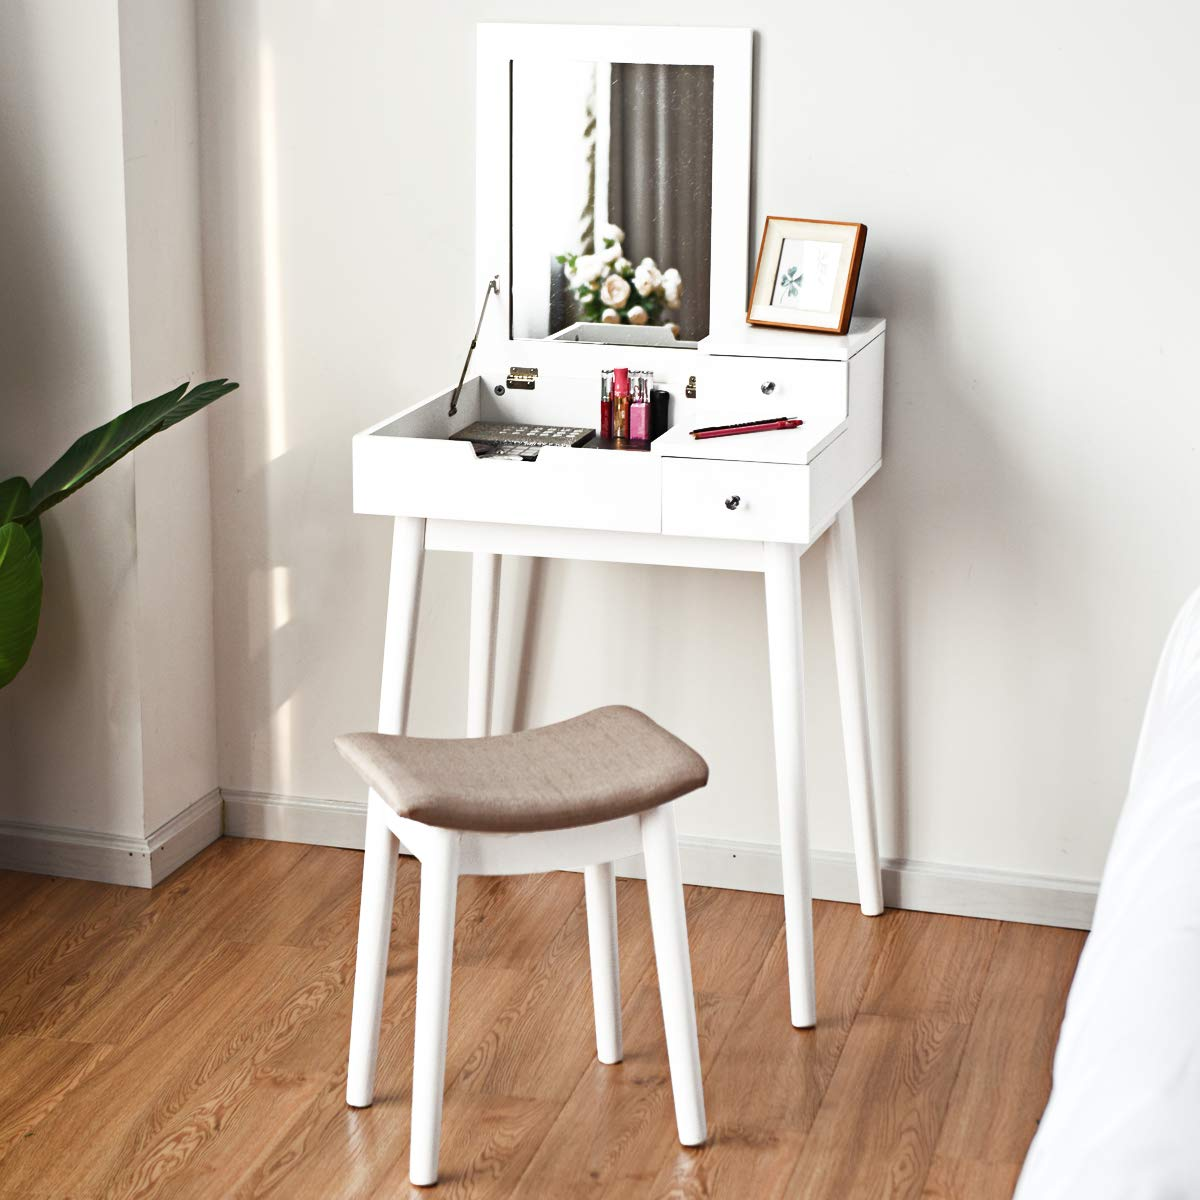 Table Set with Mirror Stool, Folding Top Flip Mirrored Large Storage Organizer, Makeup Dressing Table Sets with/ 2 Drawers,White